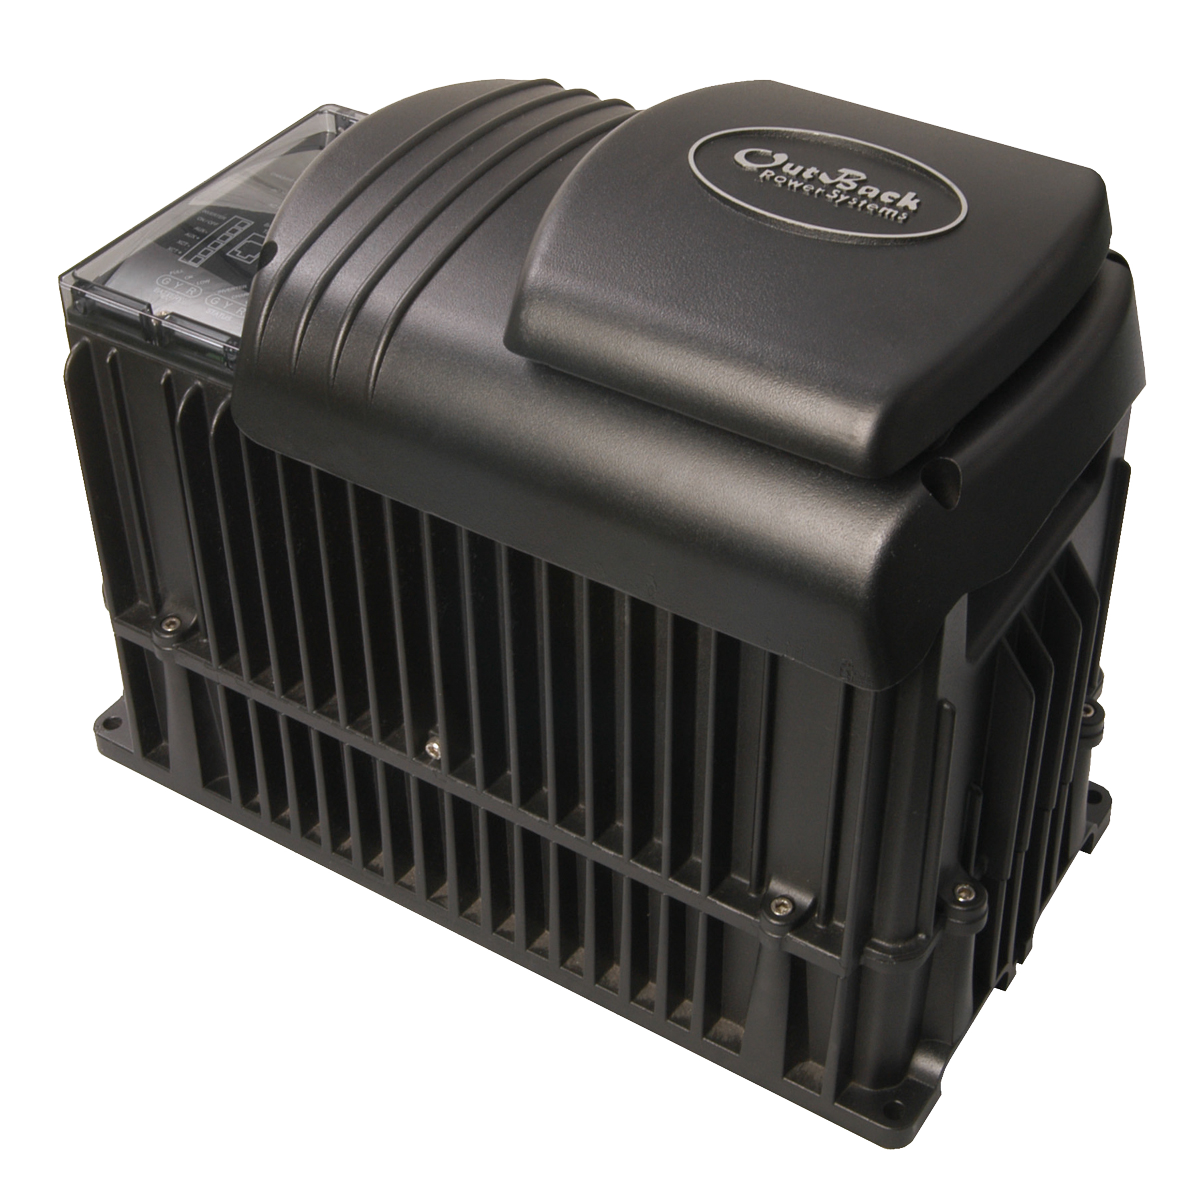 Combi-Unit Inverter/Charger OBX Sealed and Rugged Combi-Unit